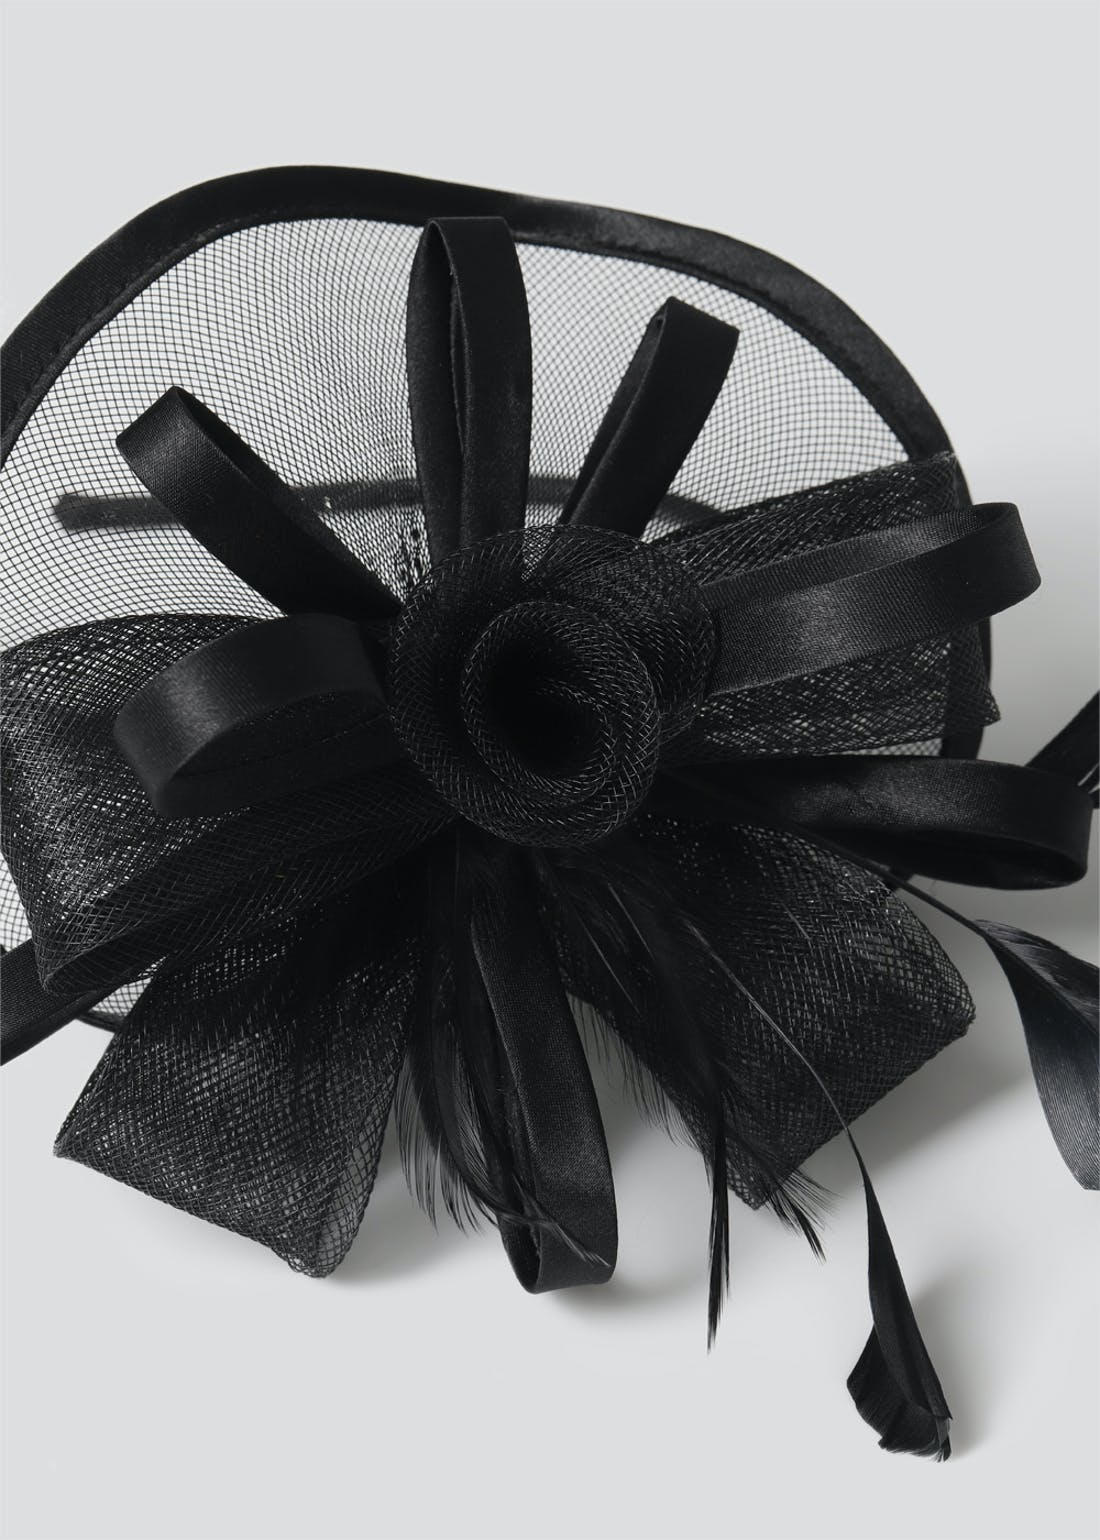 Rose Satin Fascinator Headband